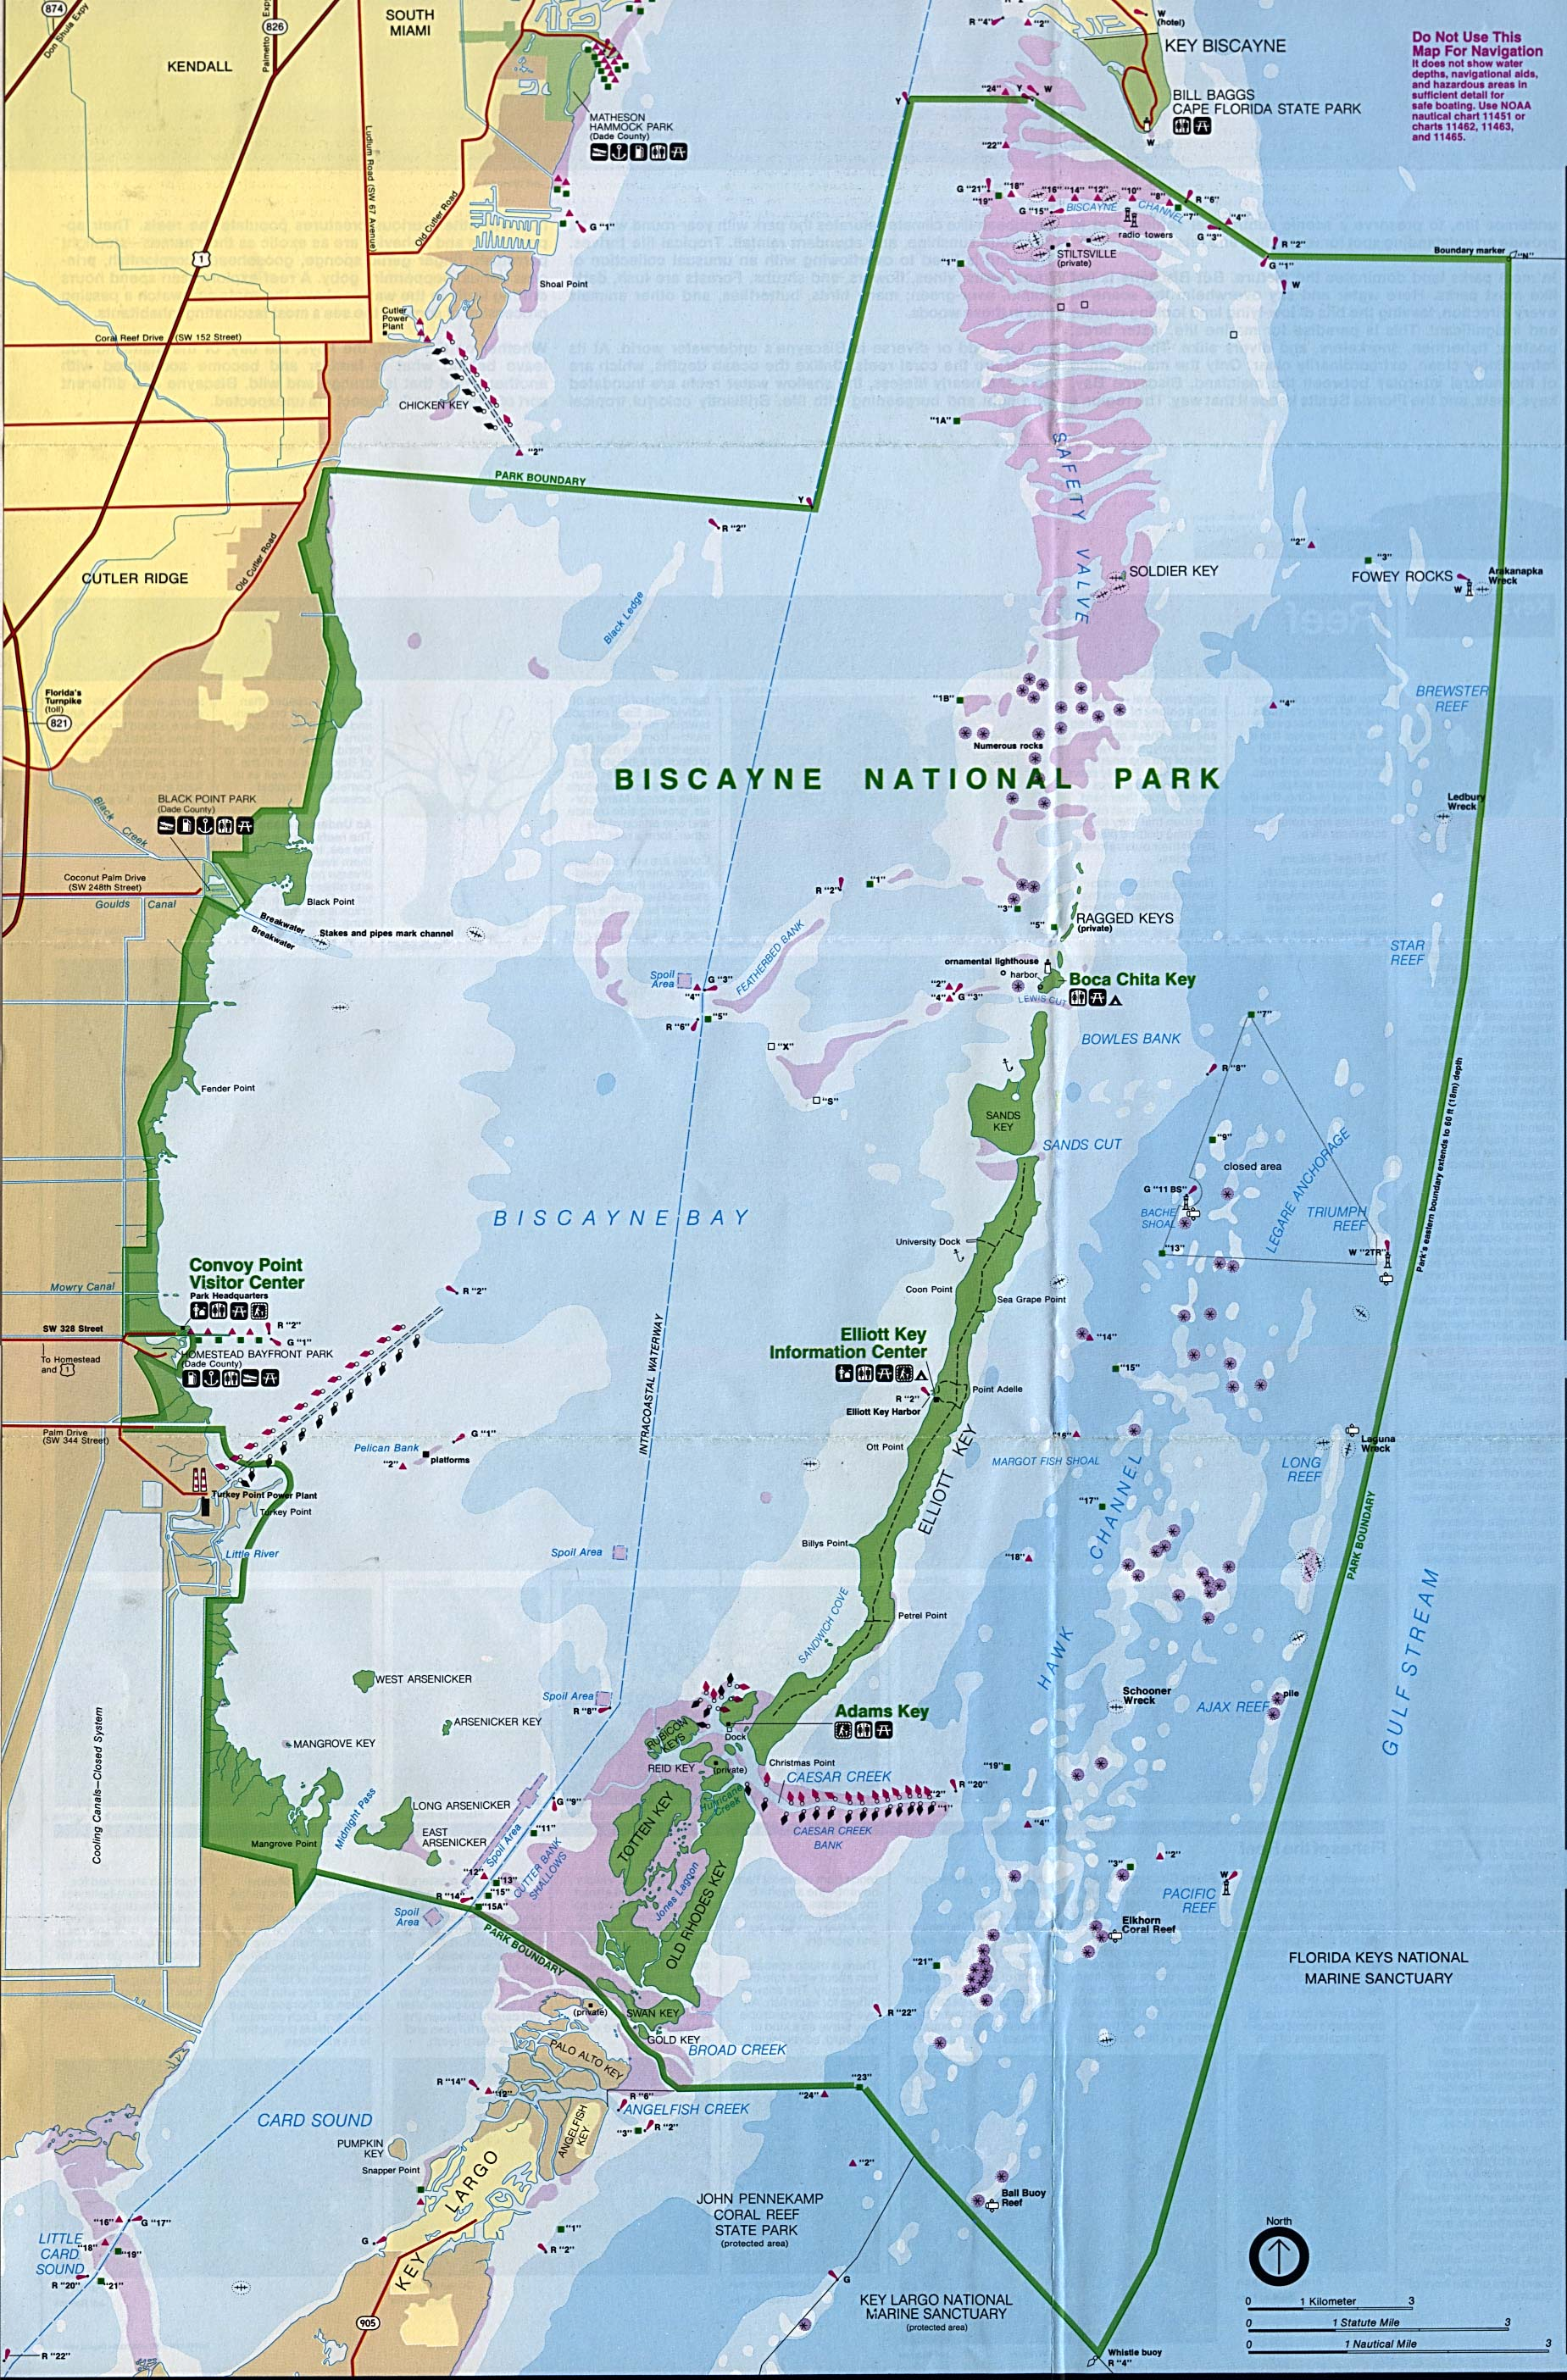 Biscayne Maps NPMapscom Just Free Maps Period Emergency - Map of us national parks poster